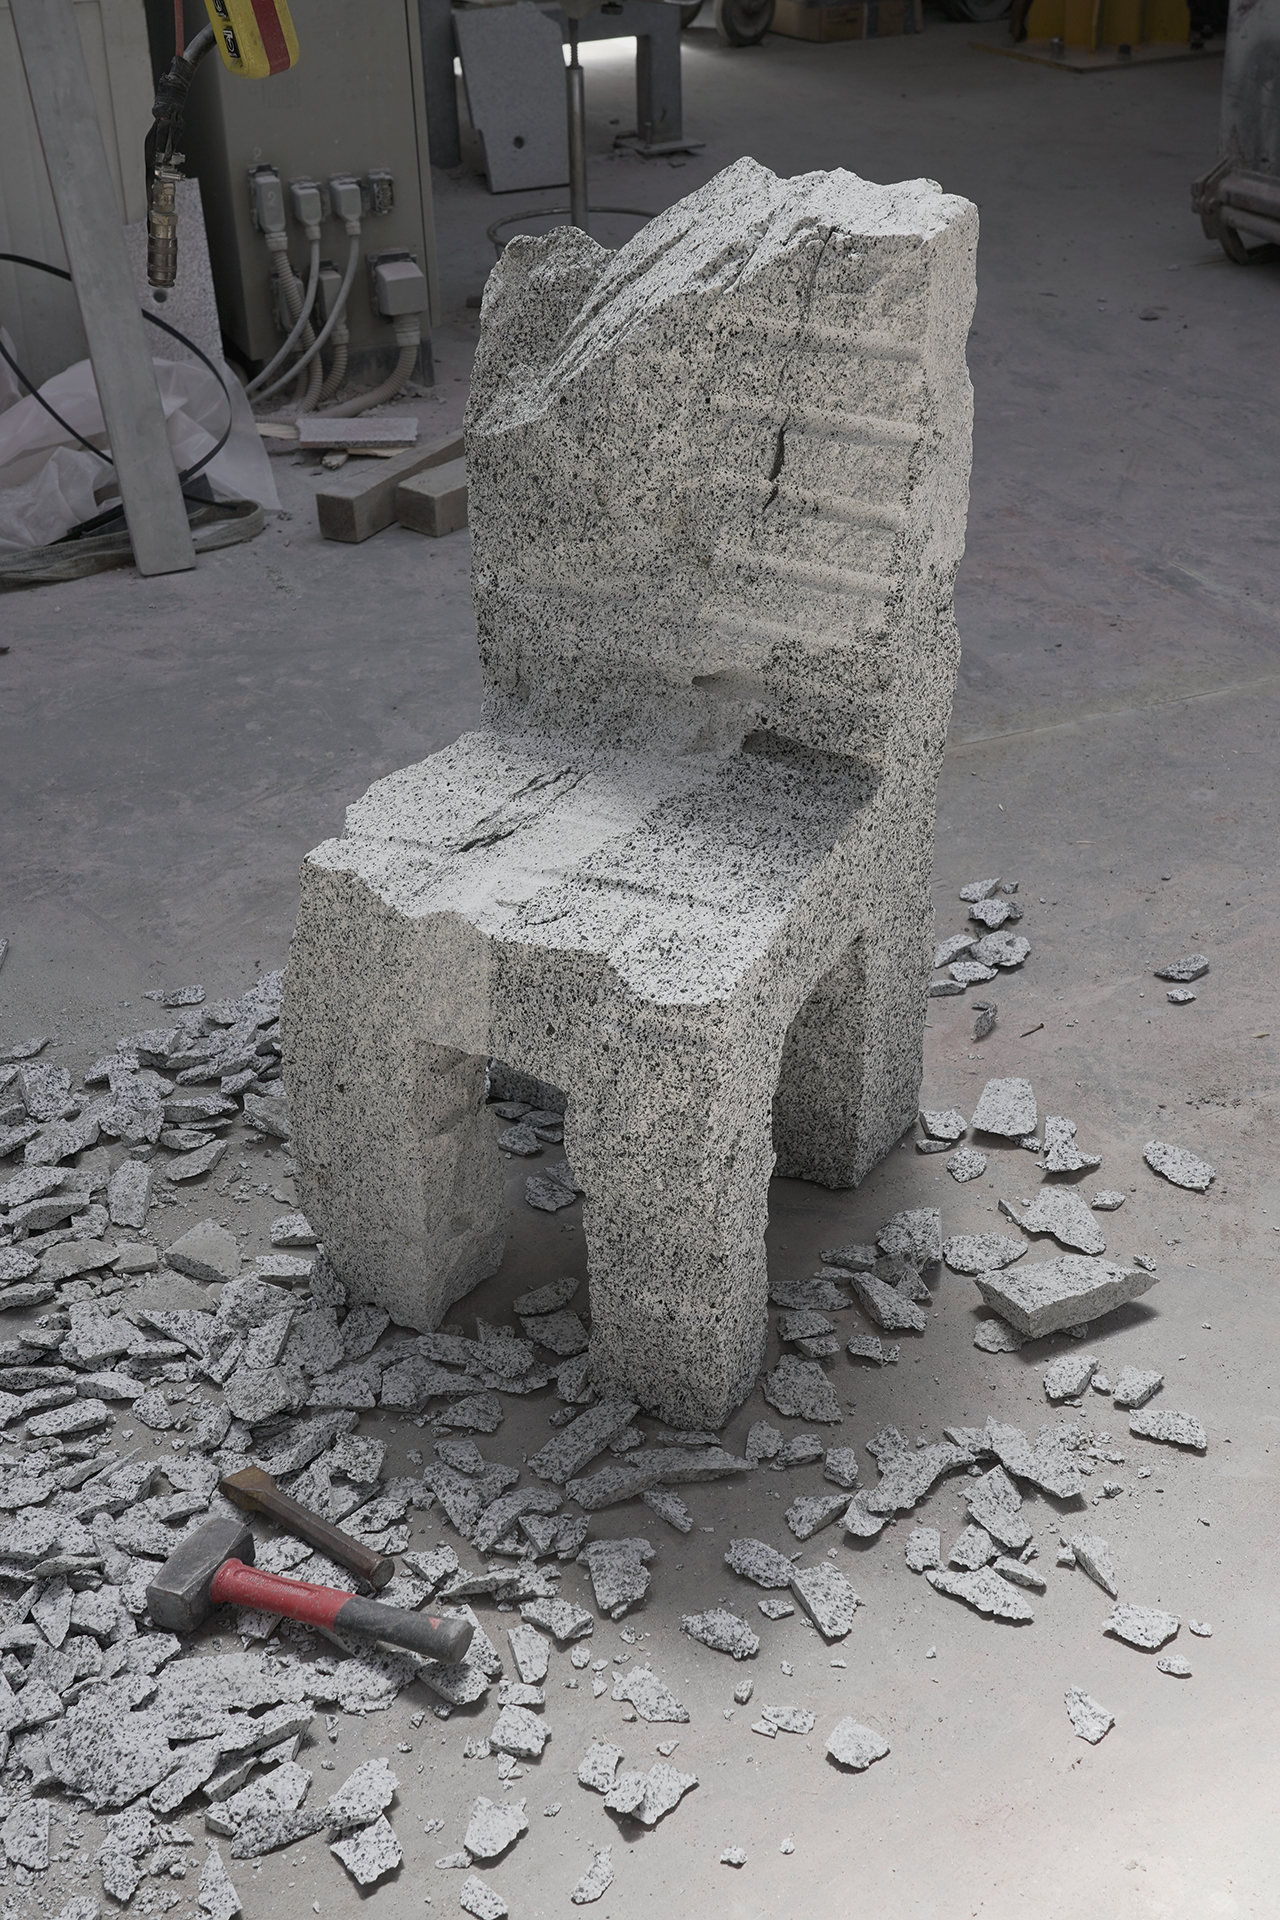 chiseled chair made of grey stone